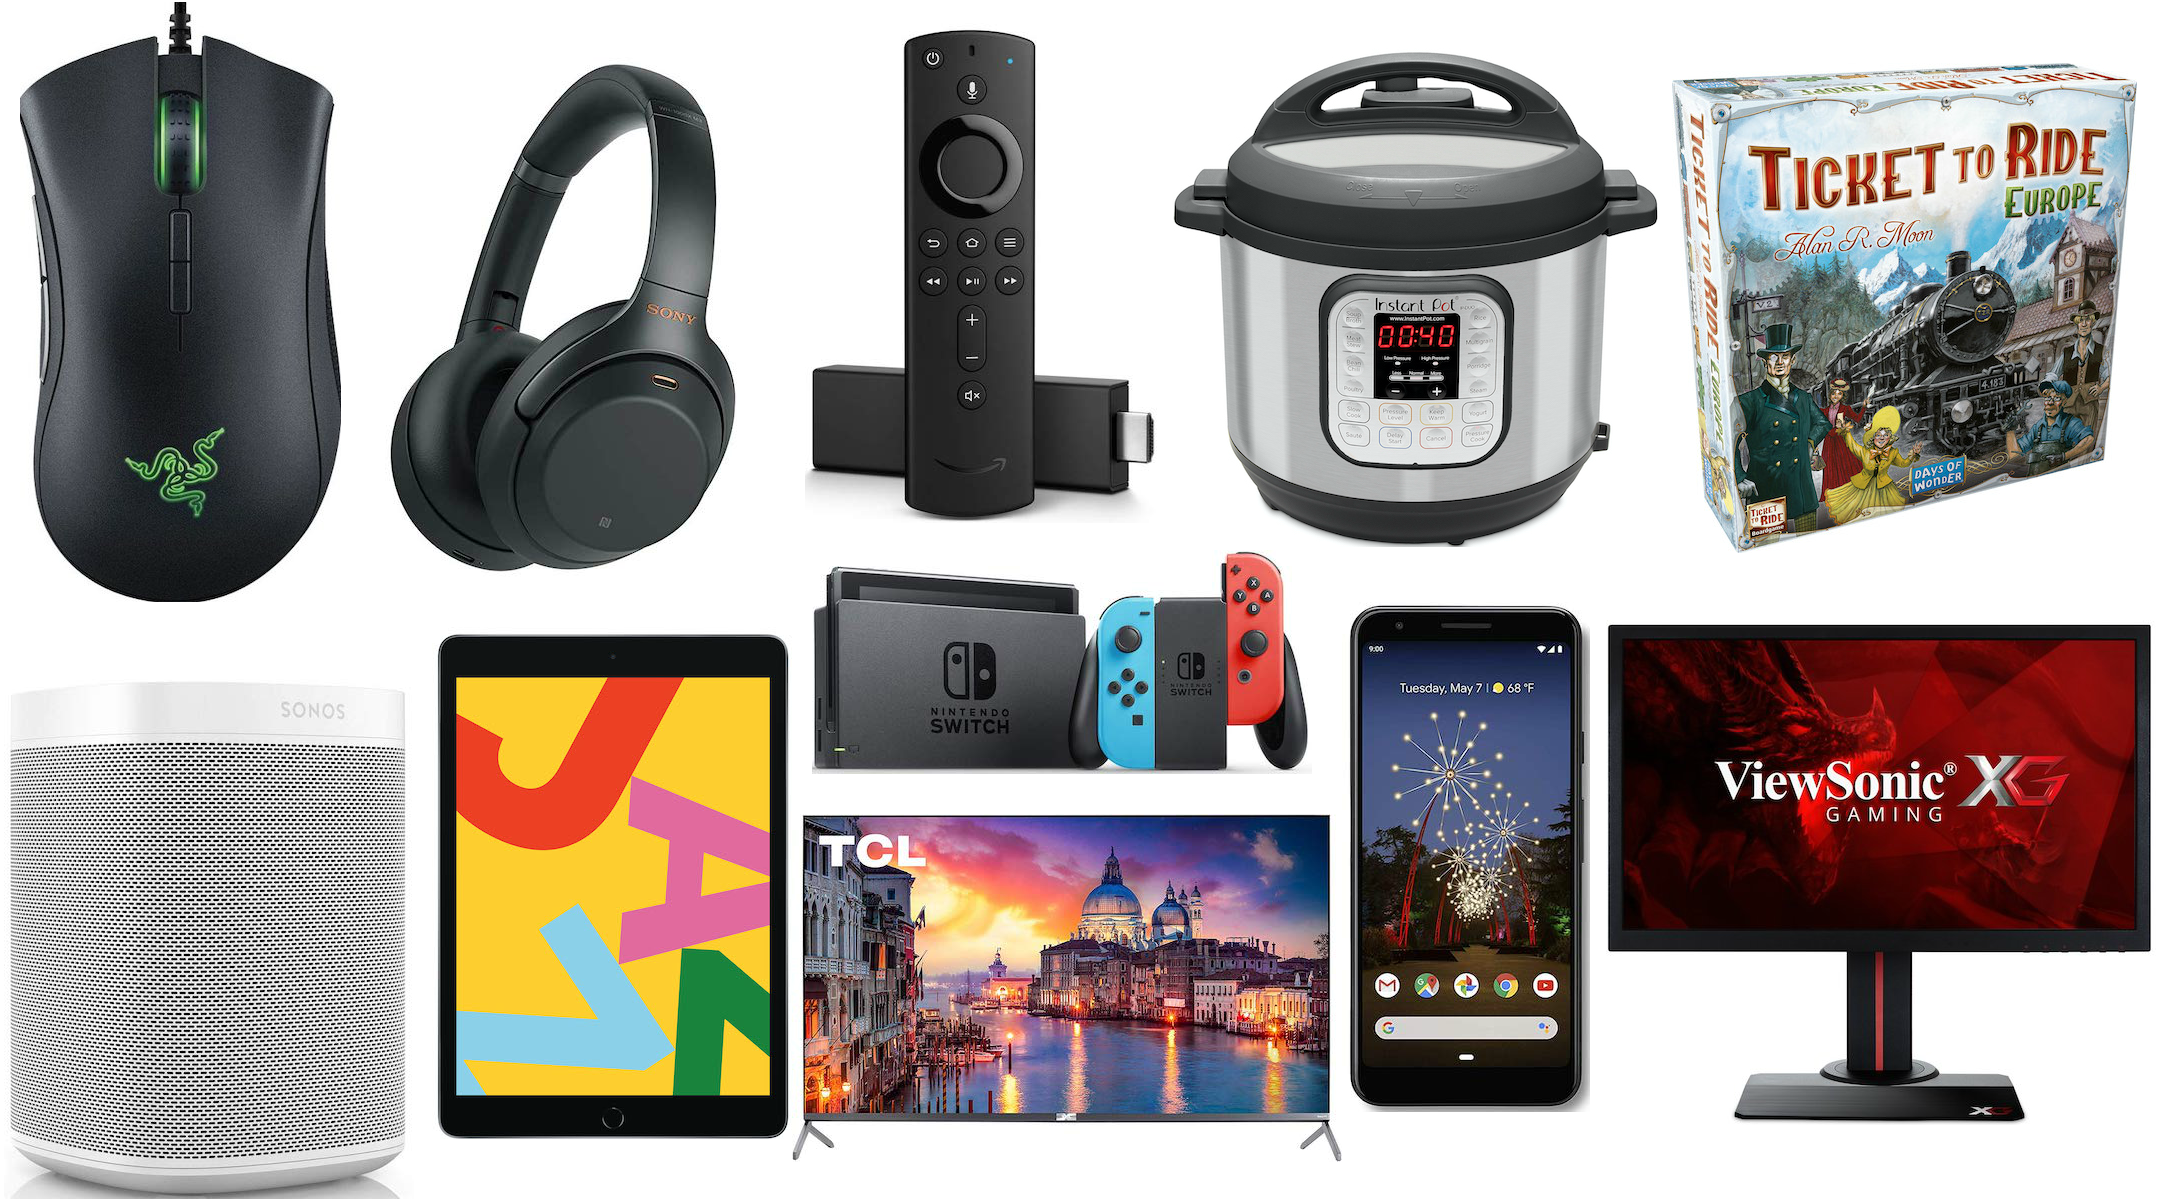 Cyber Monday 2019 Deals On Tvs Laptops Games And More Tech Ars Technica